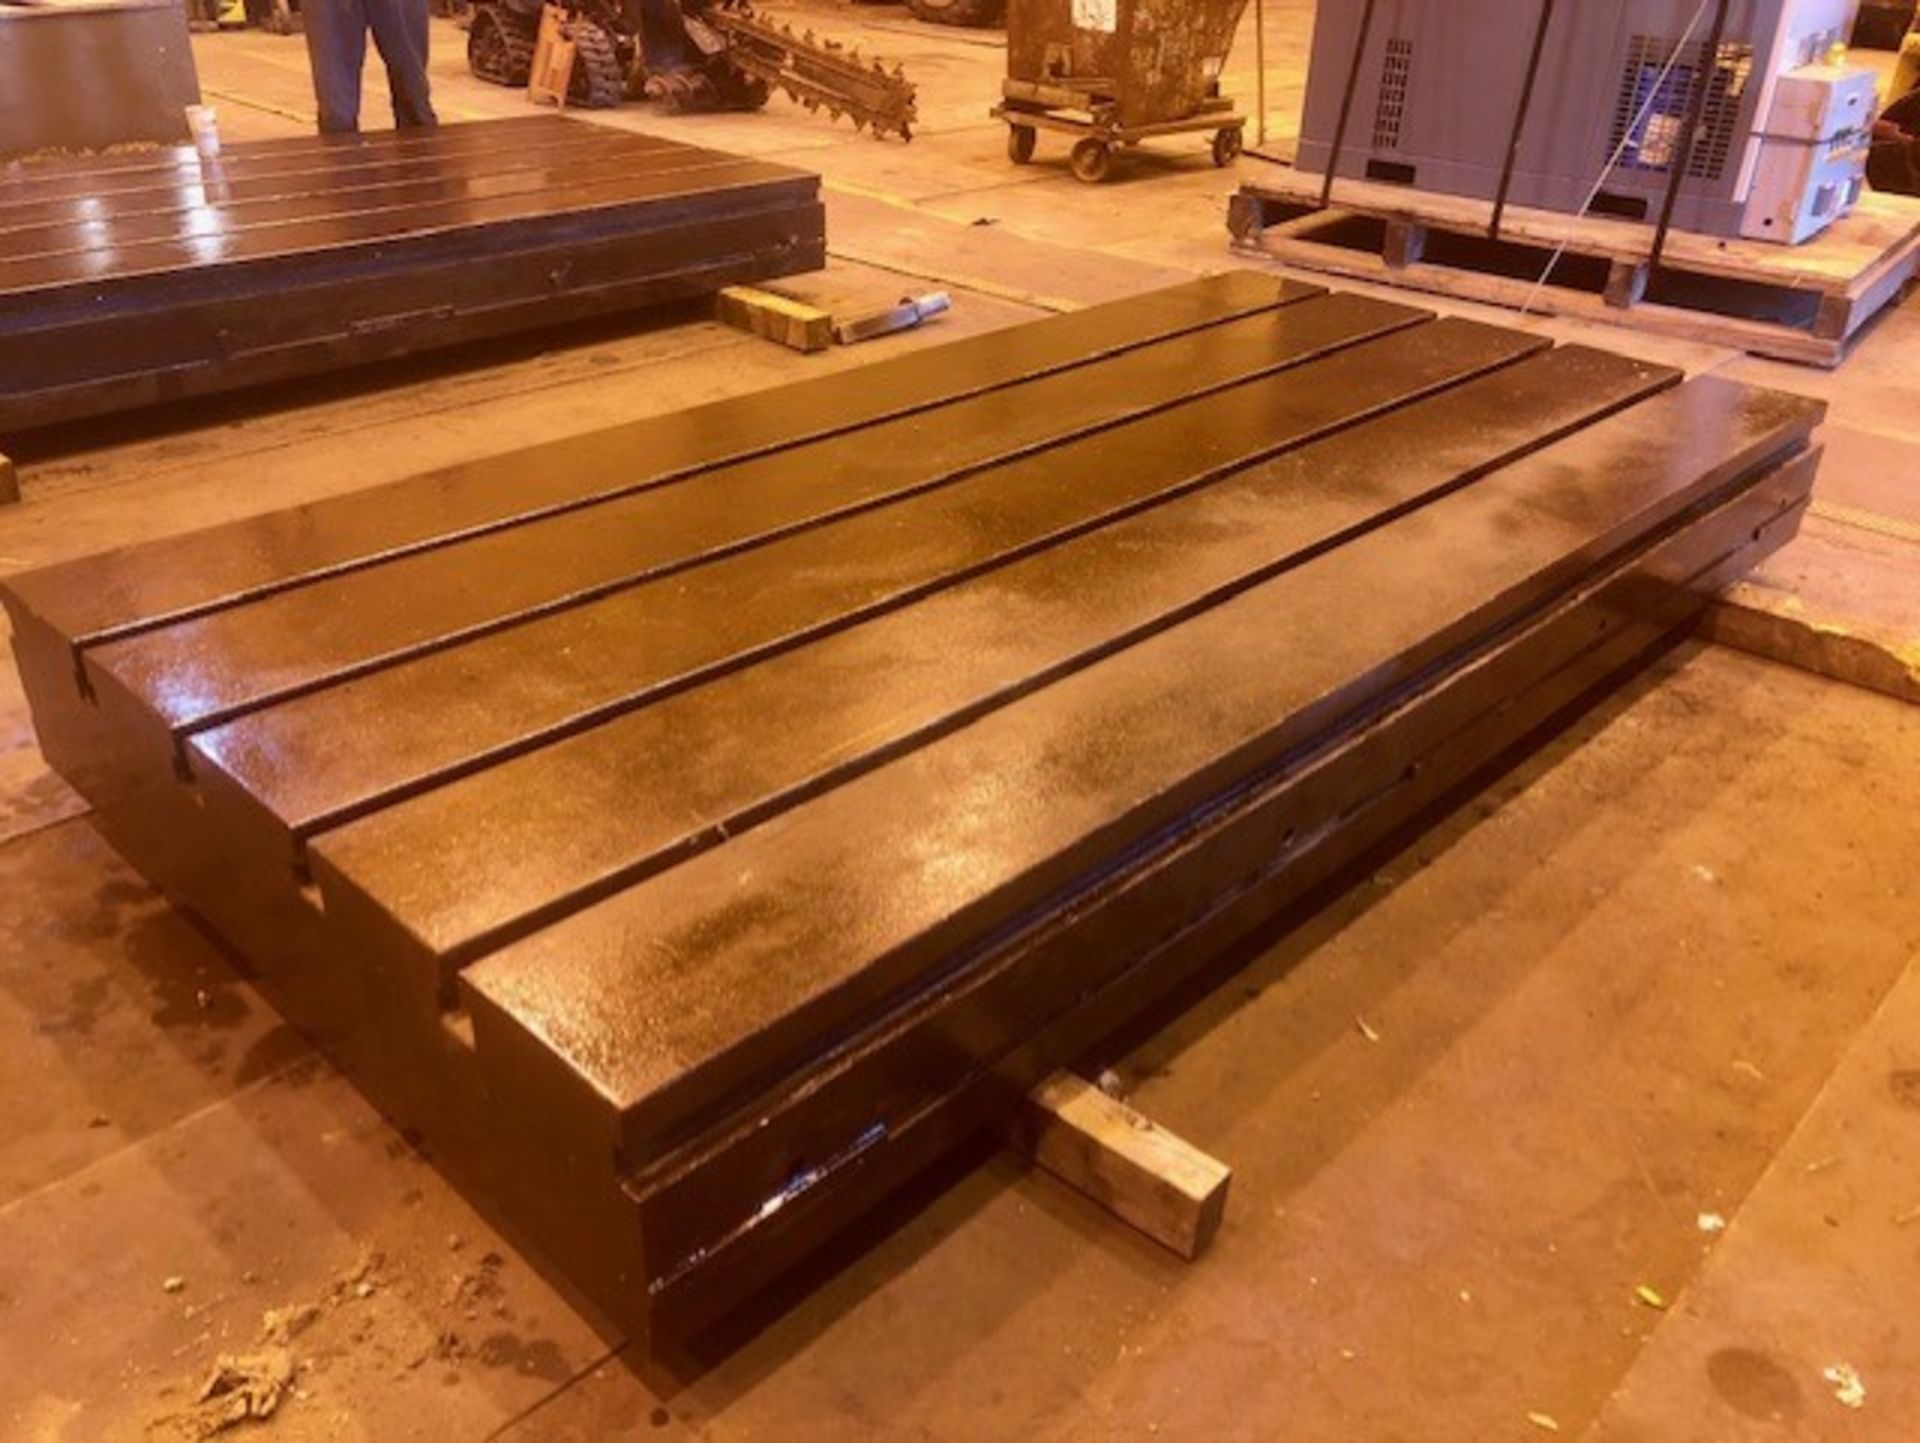 Lot 11 - 120 in L x 60 in W x 12 in T-Slotted Floor Plate